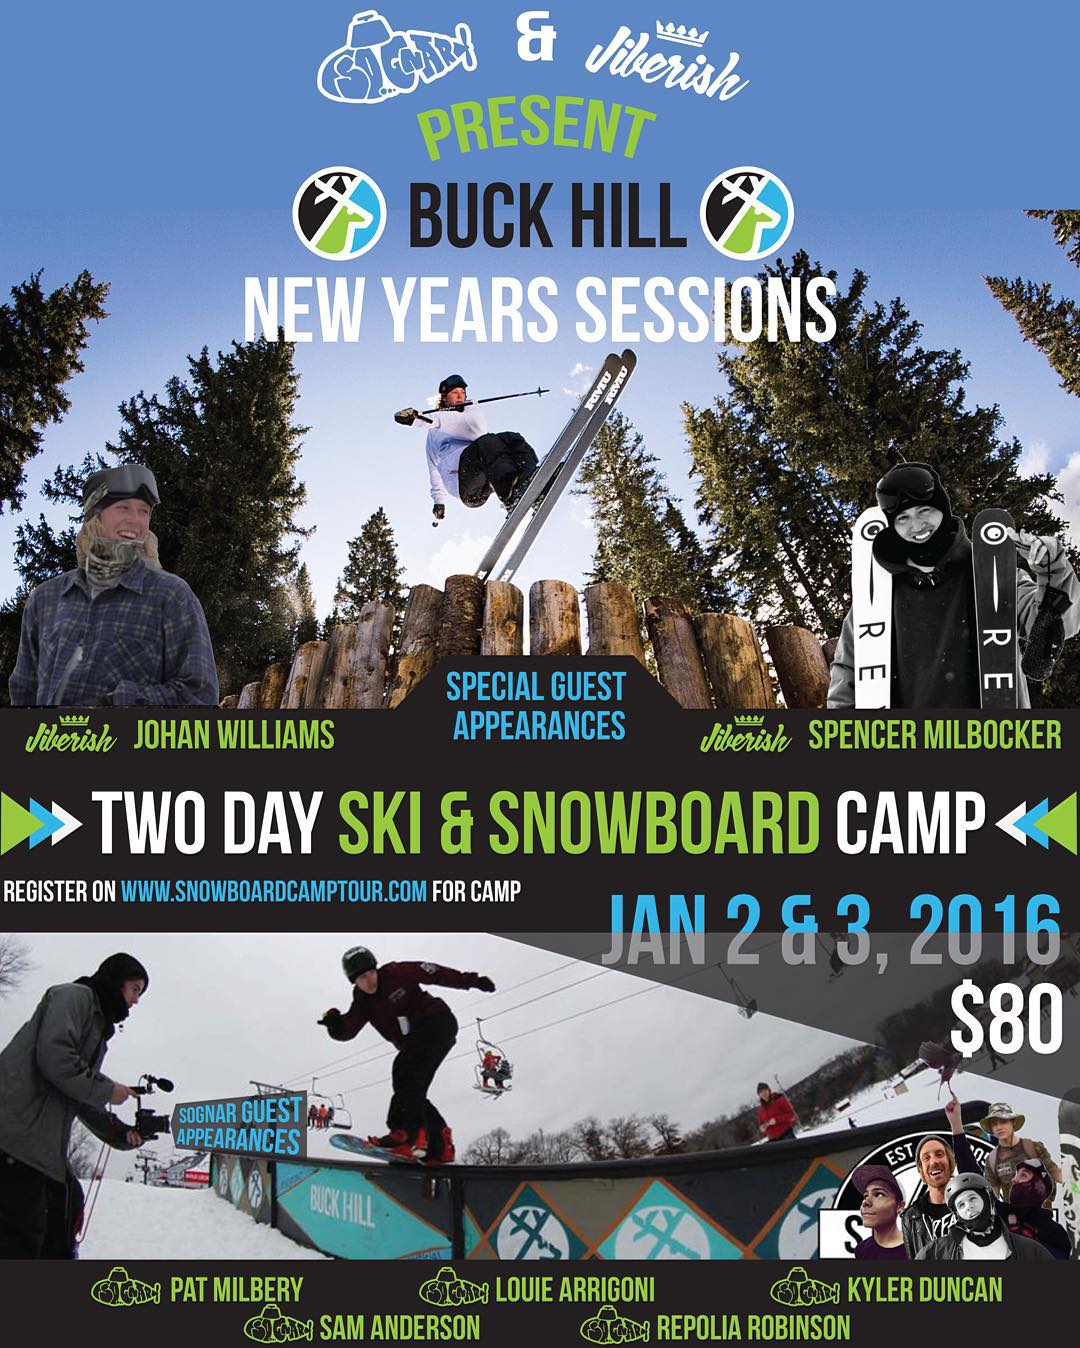 Start the new year off right with a shred sesh!! We are teaming up with @jiberish for our first ever SKI AND SNOWBOARD CAMP at @buckhill!! @jonahwilliams & @milbocker will be  guest coaches along with @louiearrigoni, @patmilbery, @repolia,...